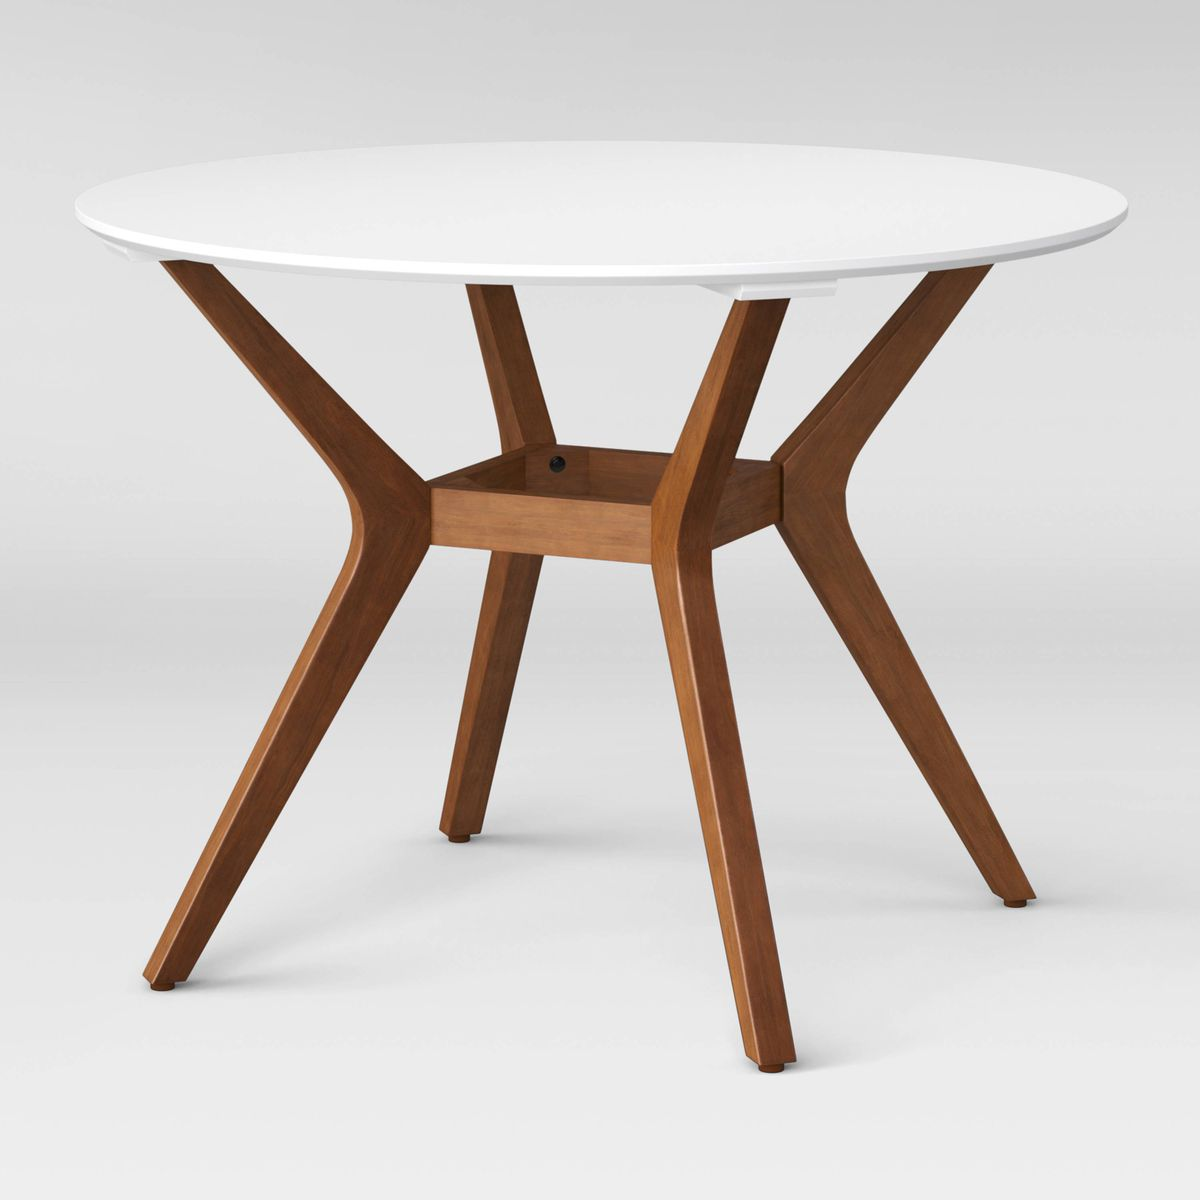 target project midcentury inspired furniture line launches curbed accent table emmond round dining pub style cordless led lamp high bedside modern coffee legs floor threshold